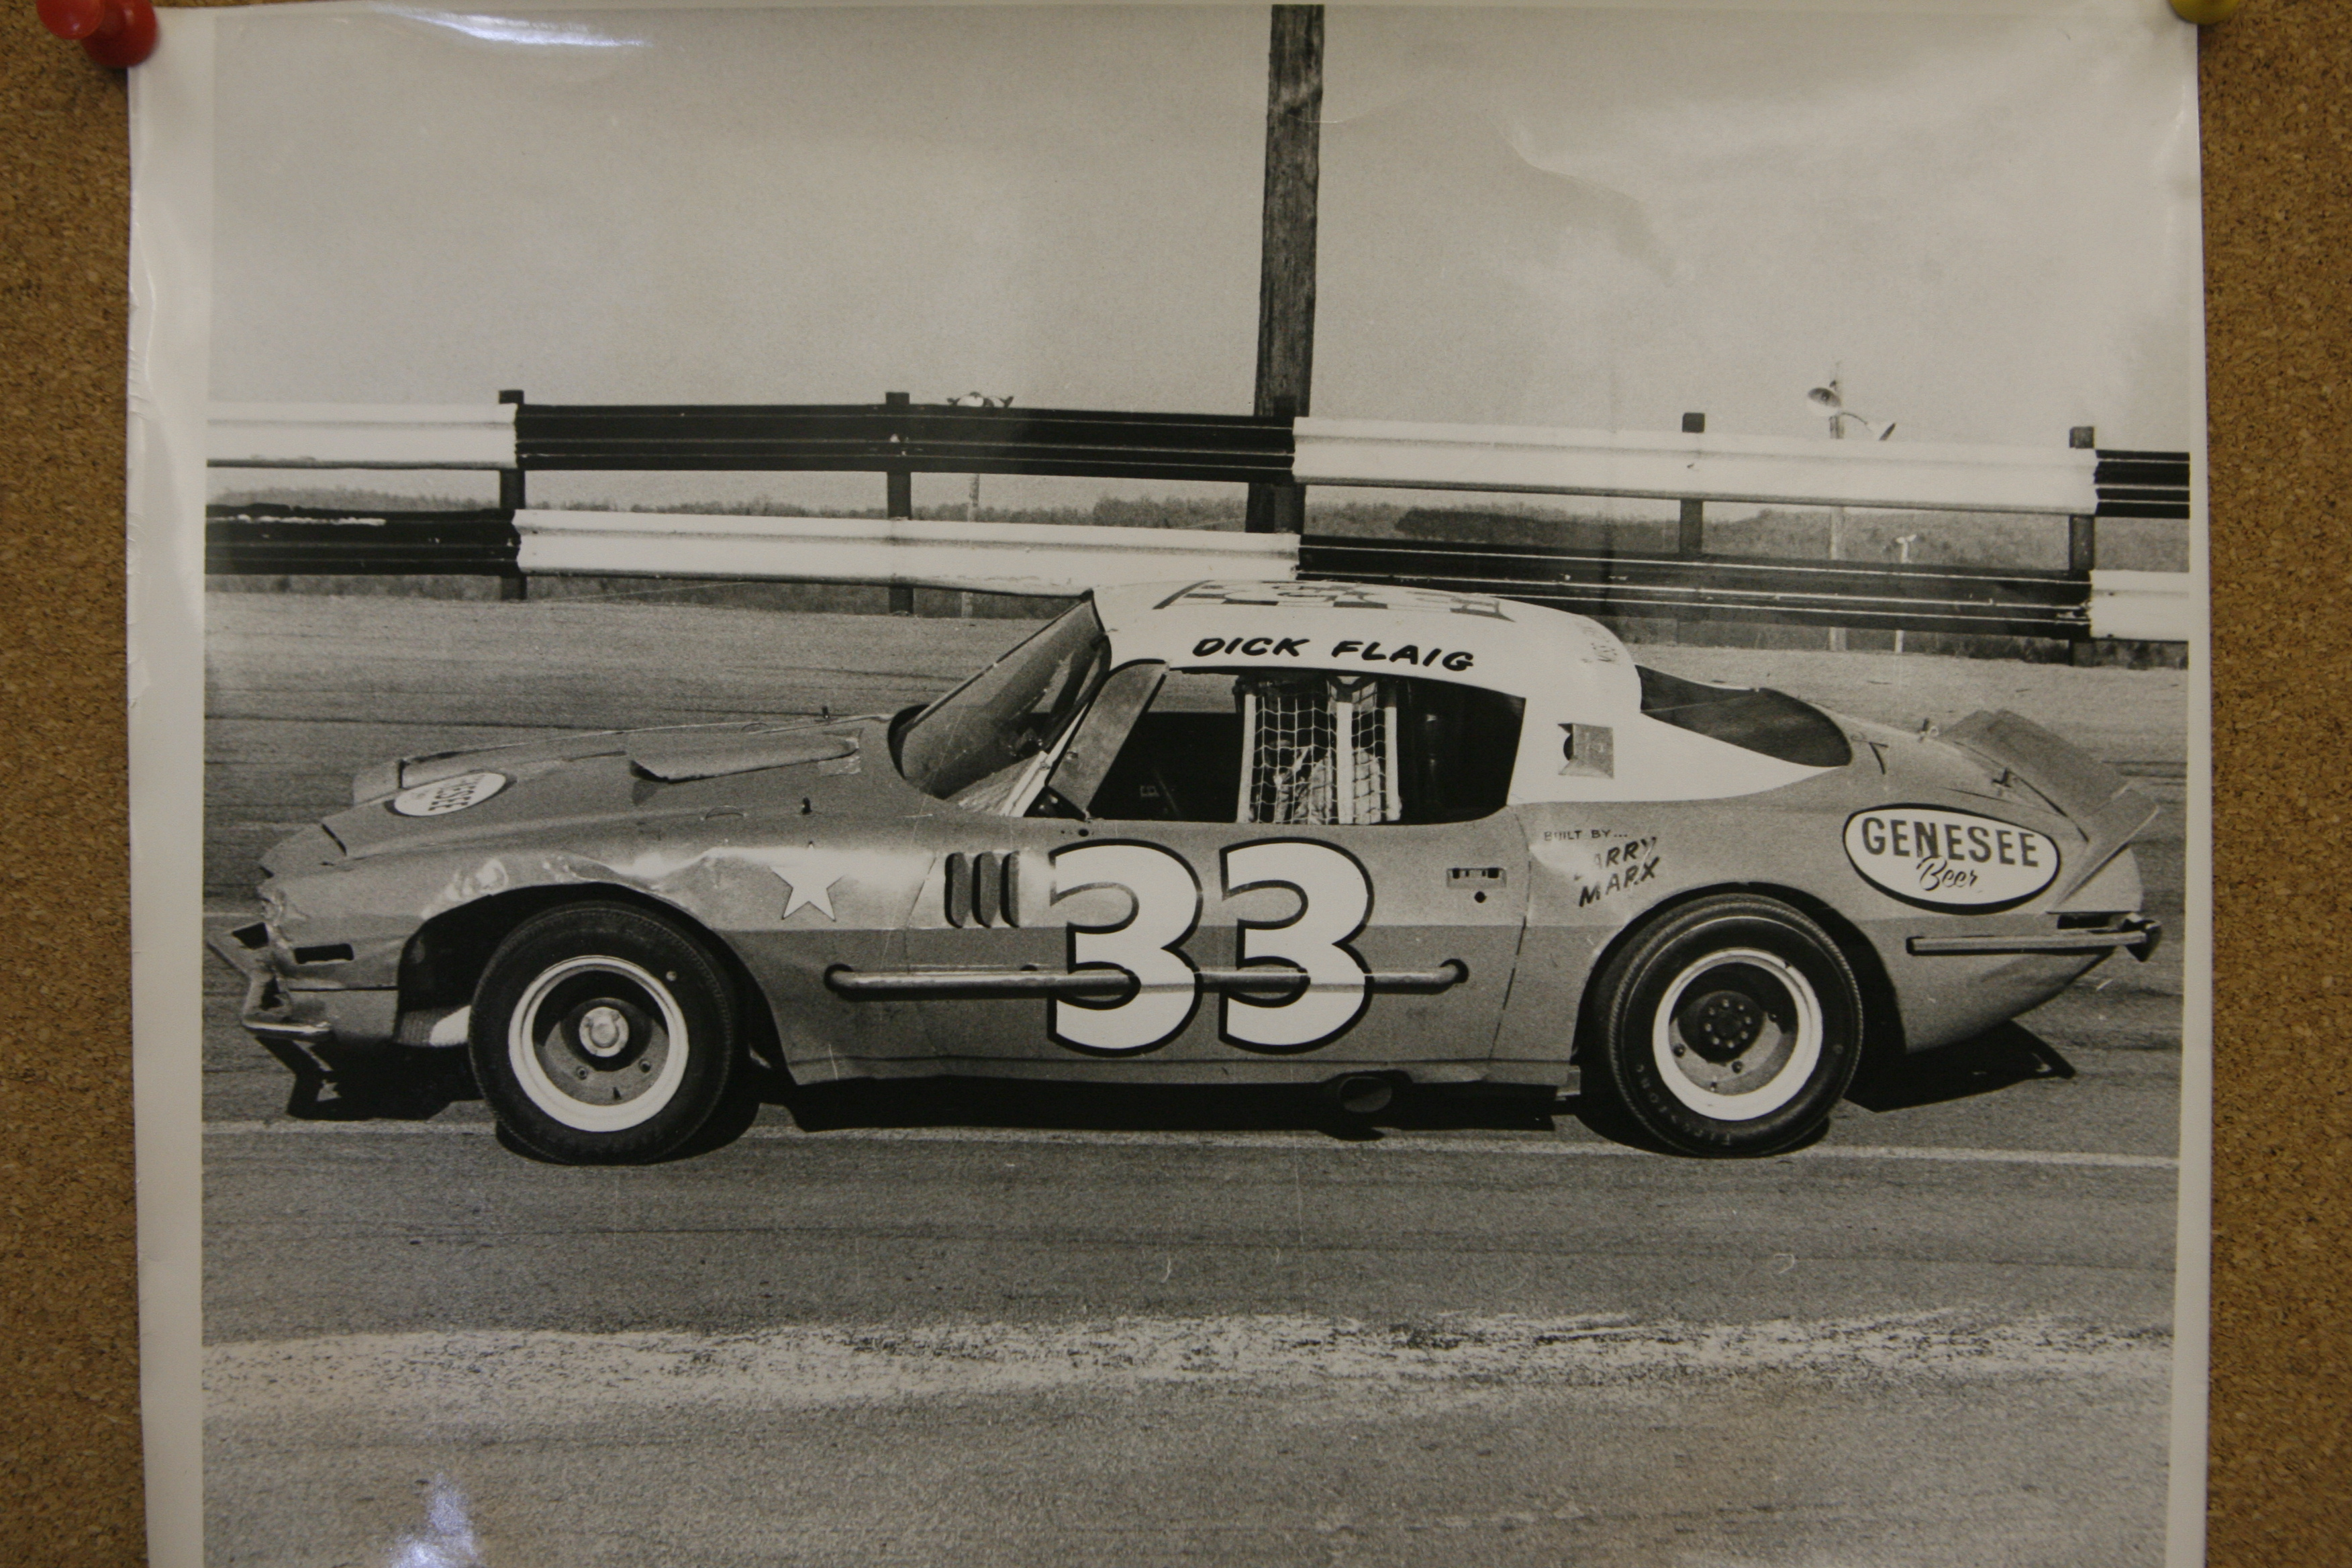 Diclk Flaig's No. 33 was a common sight at Holland Speedway.  (H/O Photo  / Buffalo News)